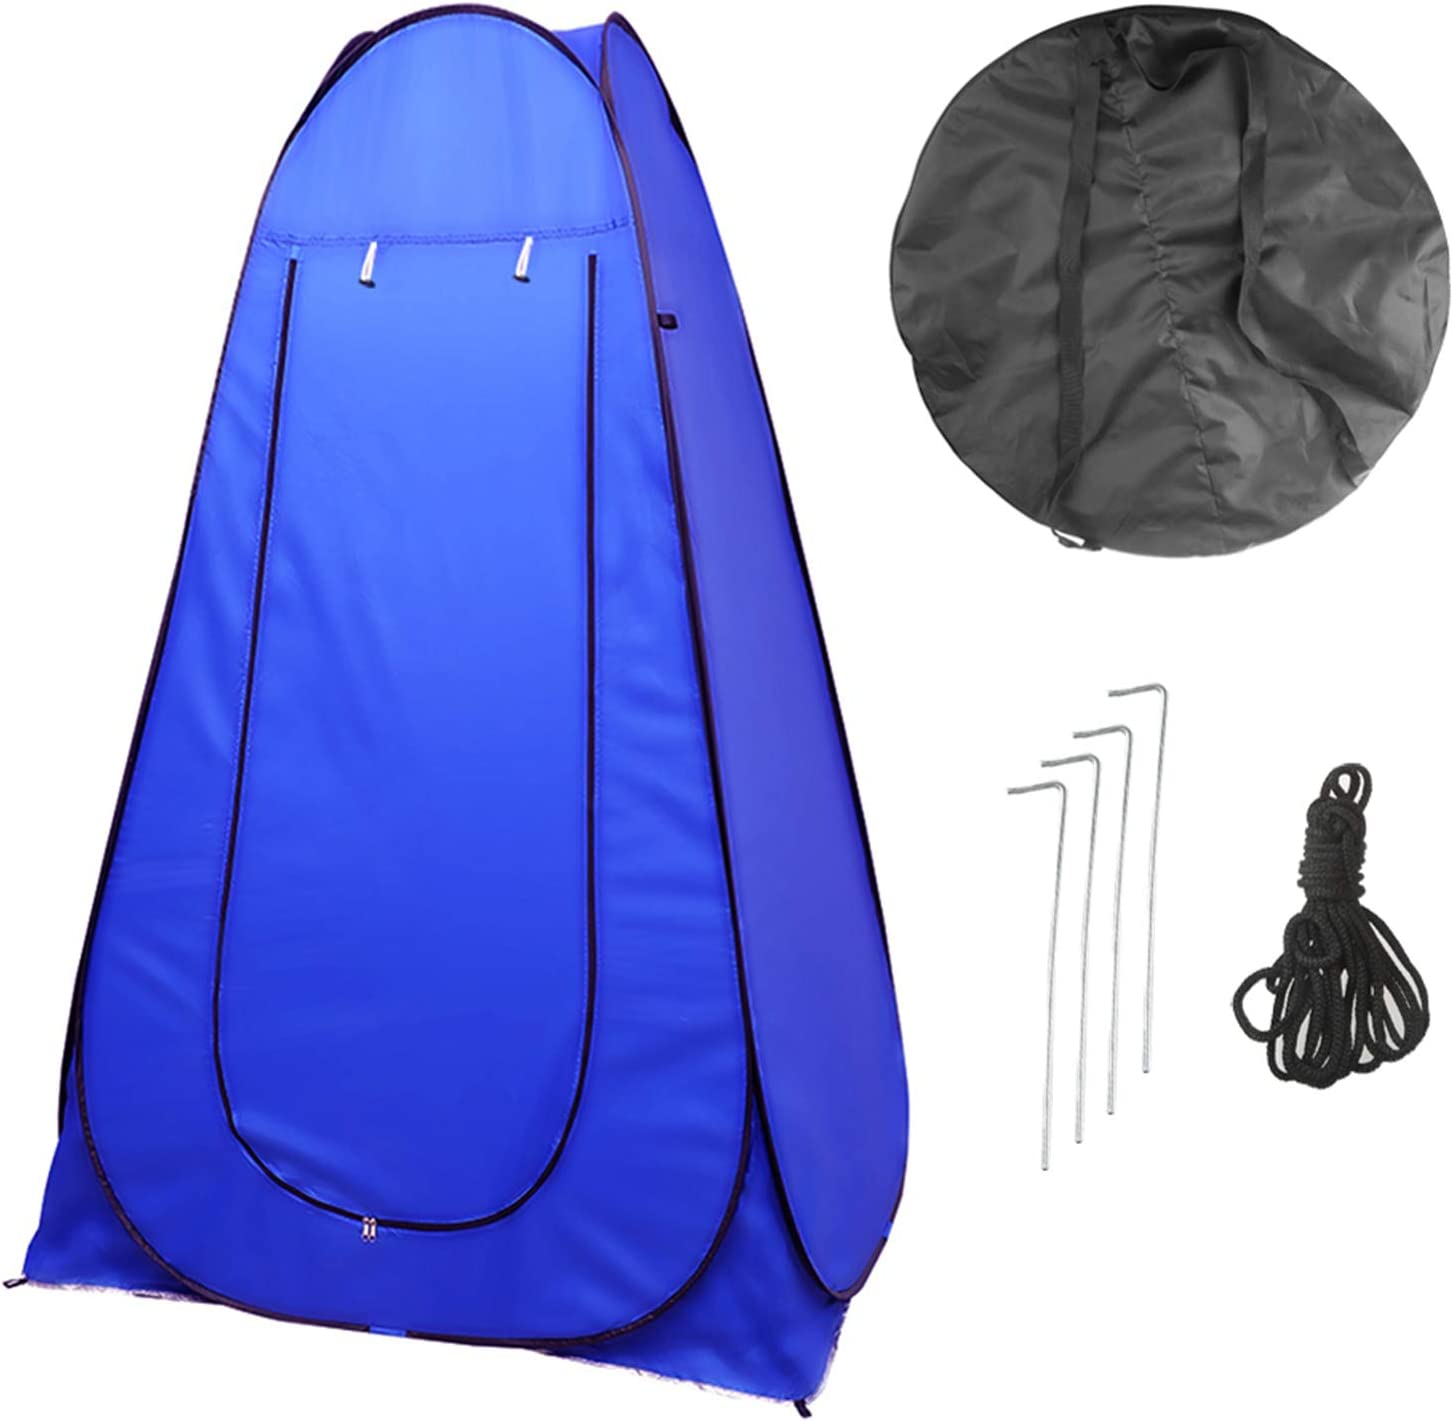 Vinteky Portable Instant Pop Up Tent Outdoor Camping Toilet Dressing Shower Changing Tent /& Toilet Privacy Room For Camping Beach Caravan Picnic Fishing And Festivals Holidays